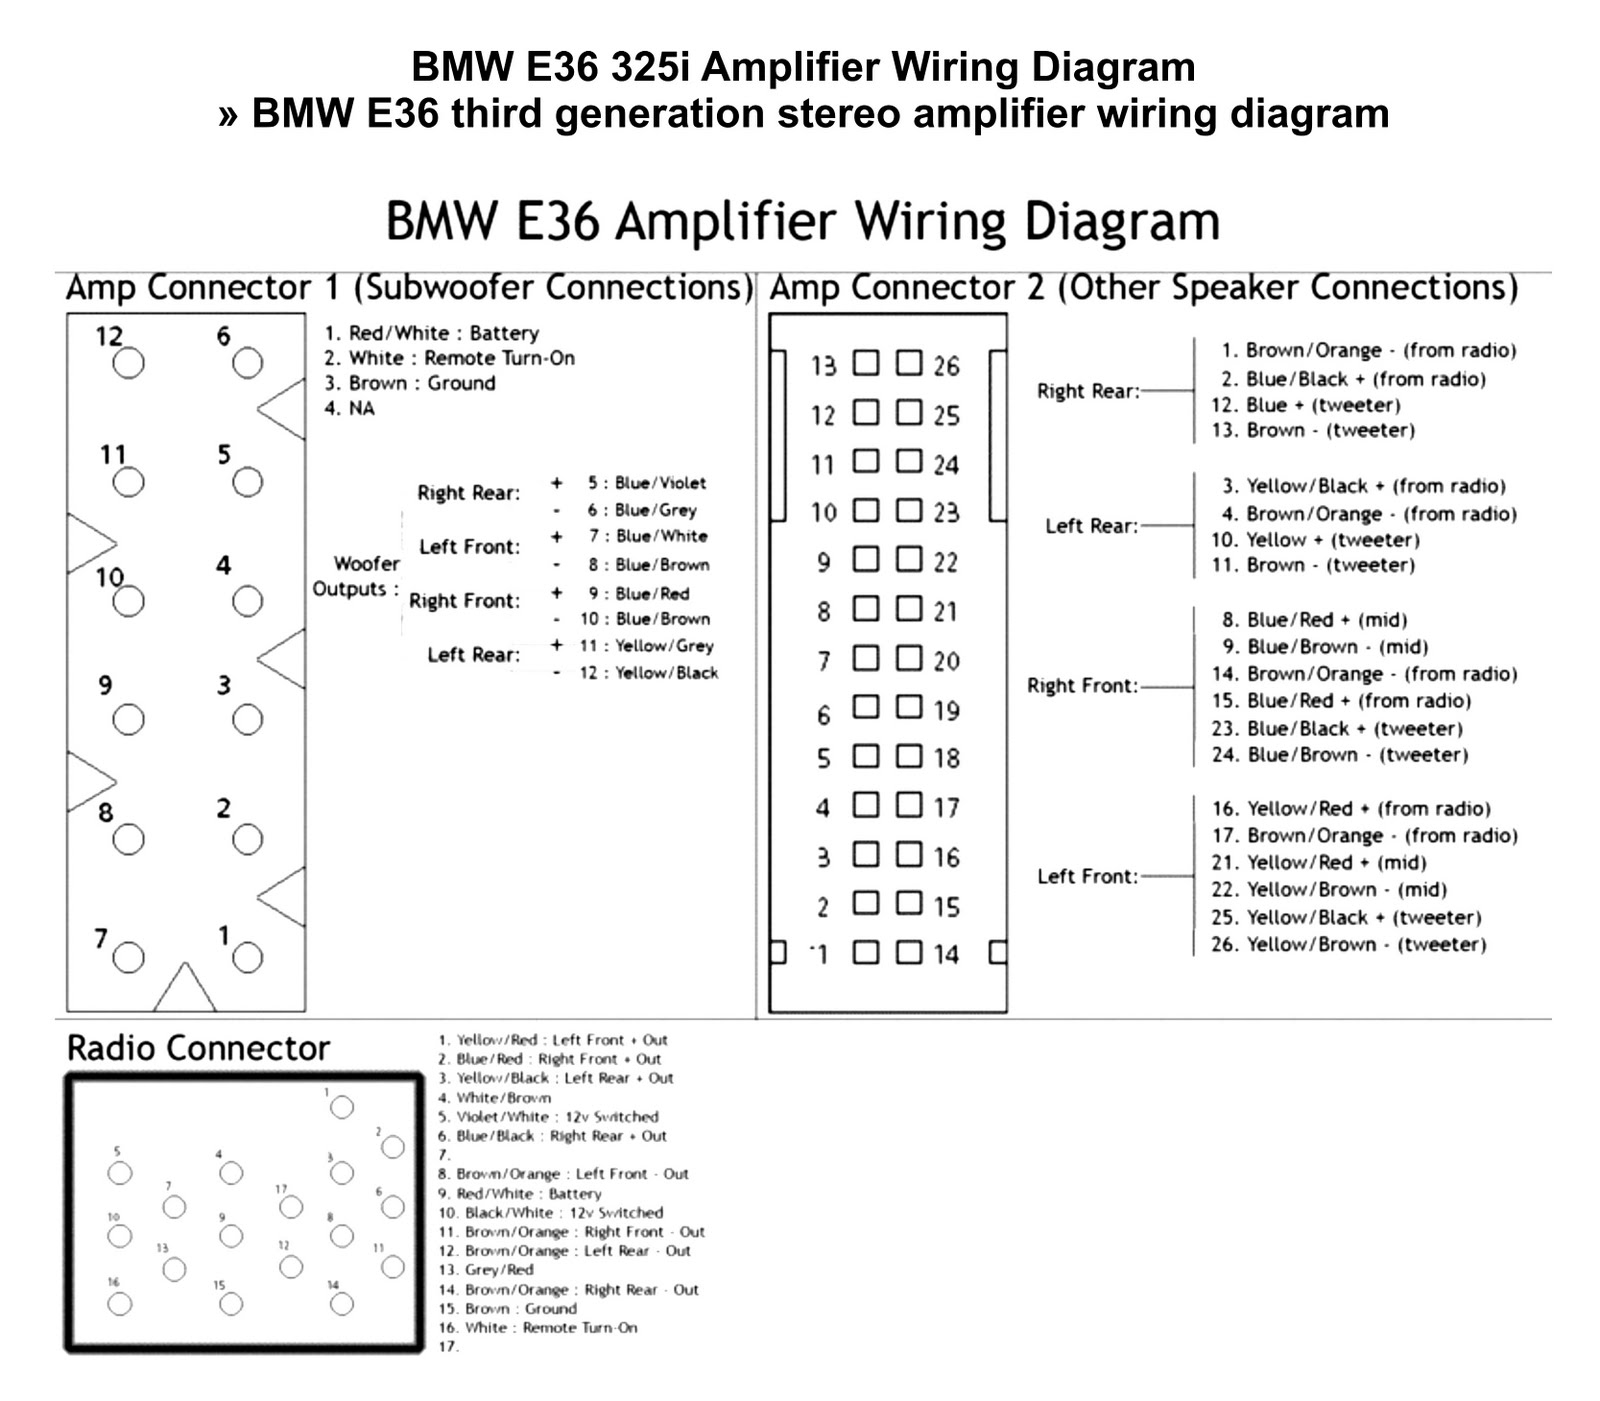 E38 Fuse Box Location Wiring Library Bmw E36 Z4 Amp Diagram Starting Know About U2022 528i Radio